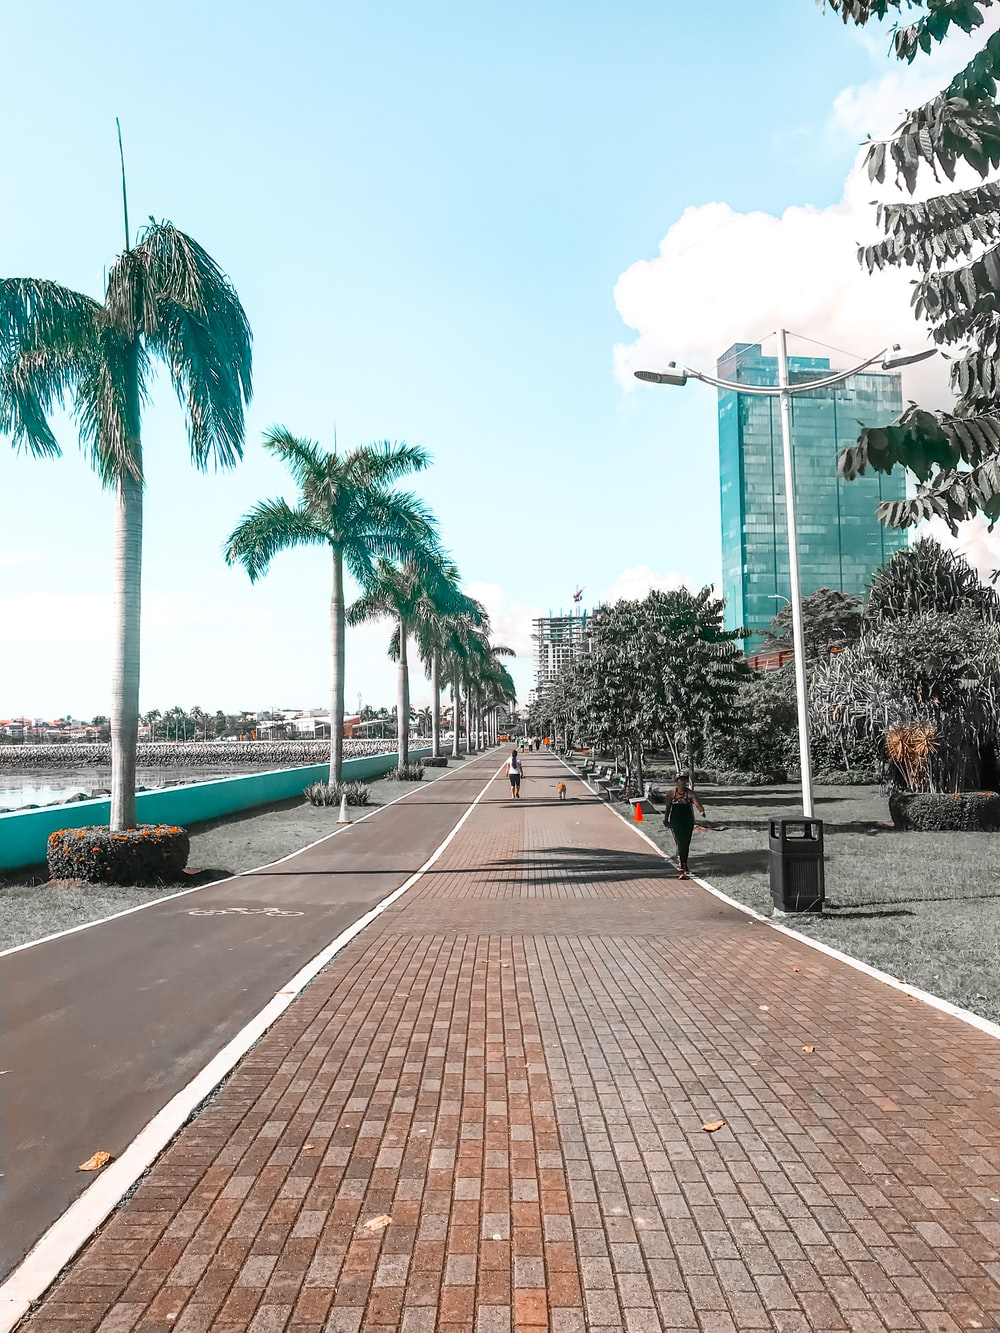 gray concrete road between green palm trees during daytime